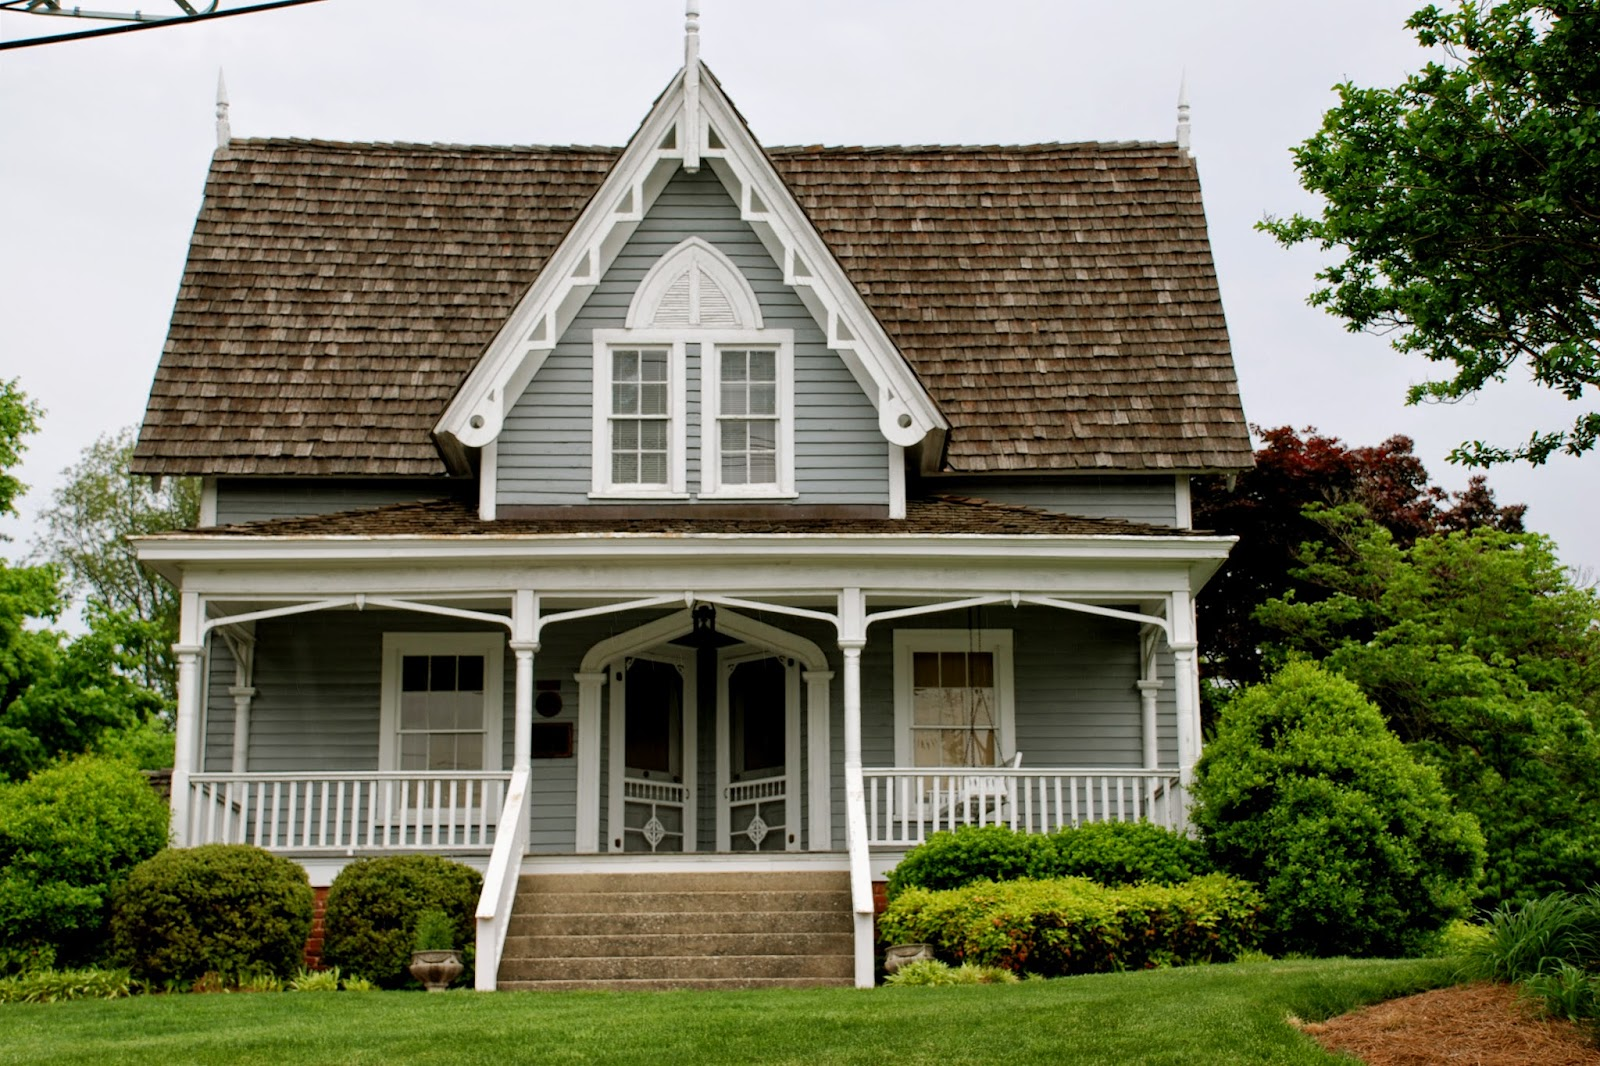 Tremendous Restoring The Roost Period Cottages Largest Home Design Picture Inspirations Pitcheantrous